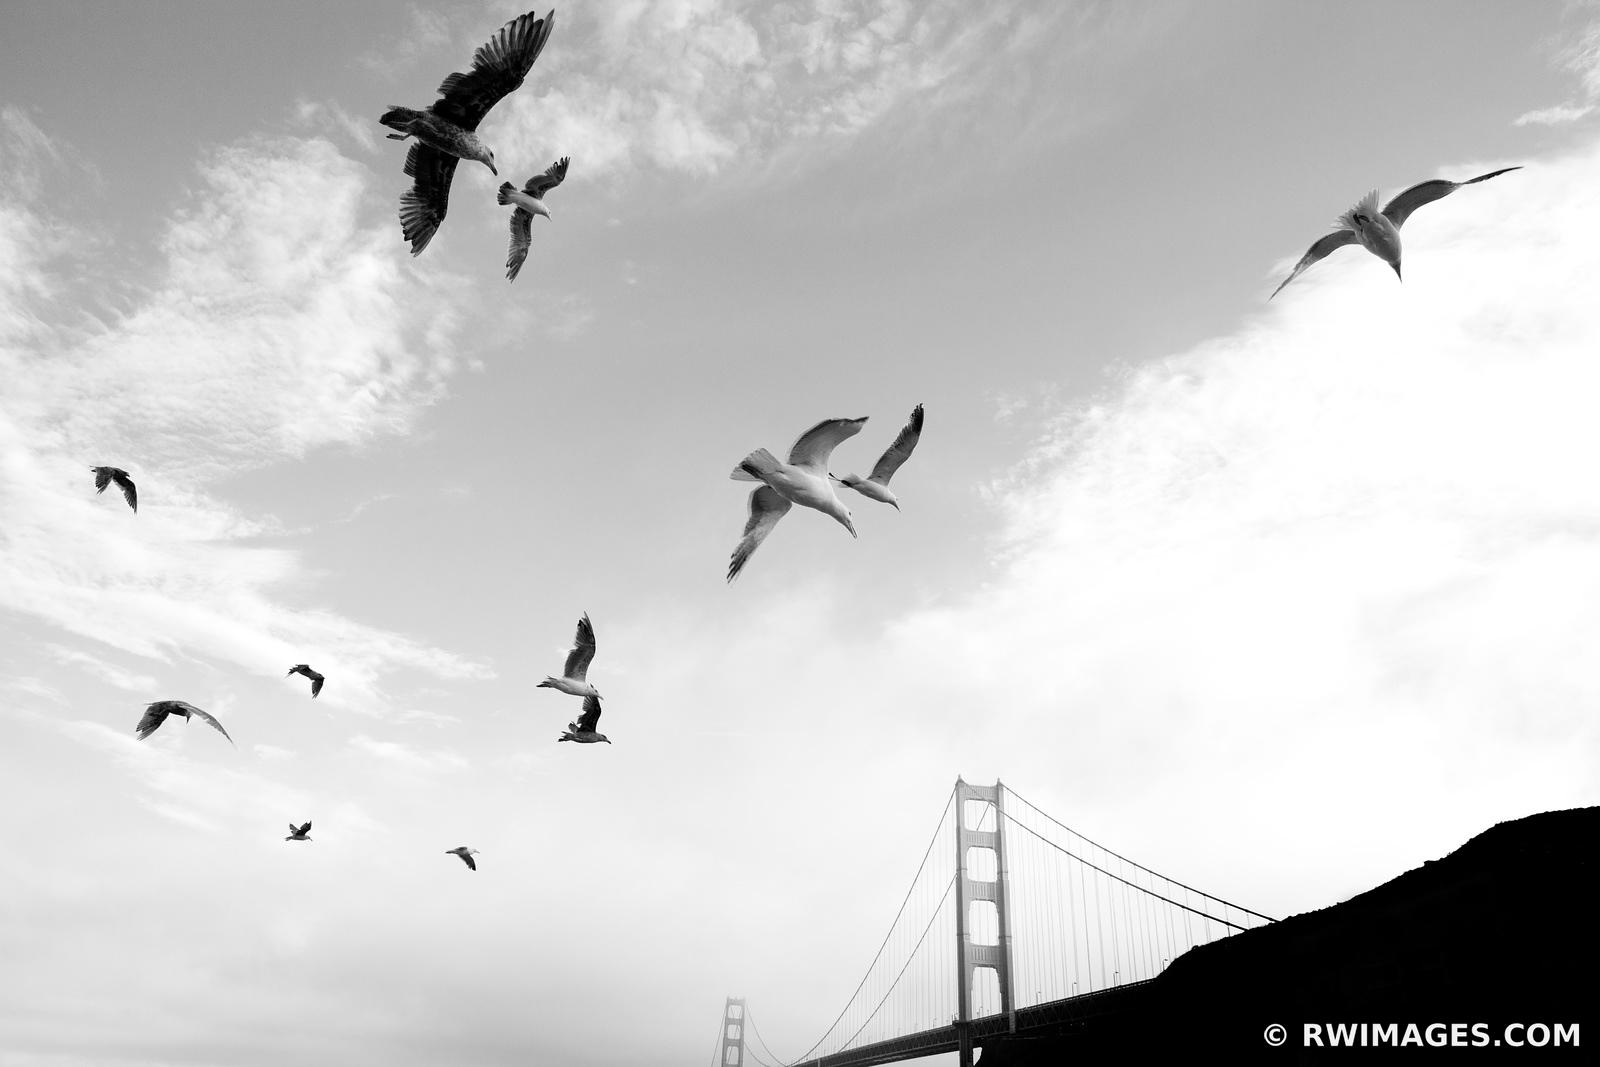 SEAGULLS SUNSET GOLDEN GATE BRIDGE SAN FRANCISCO BLACK AND WHITE